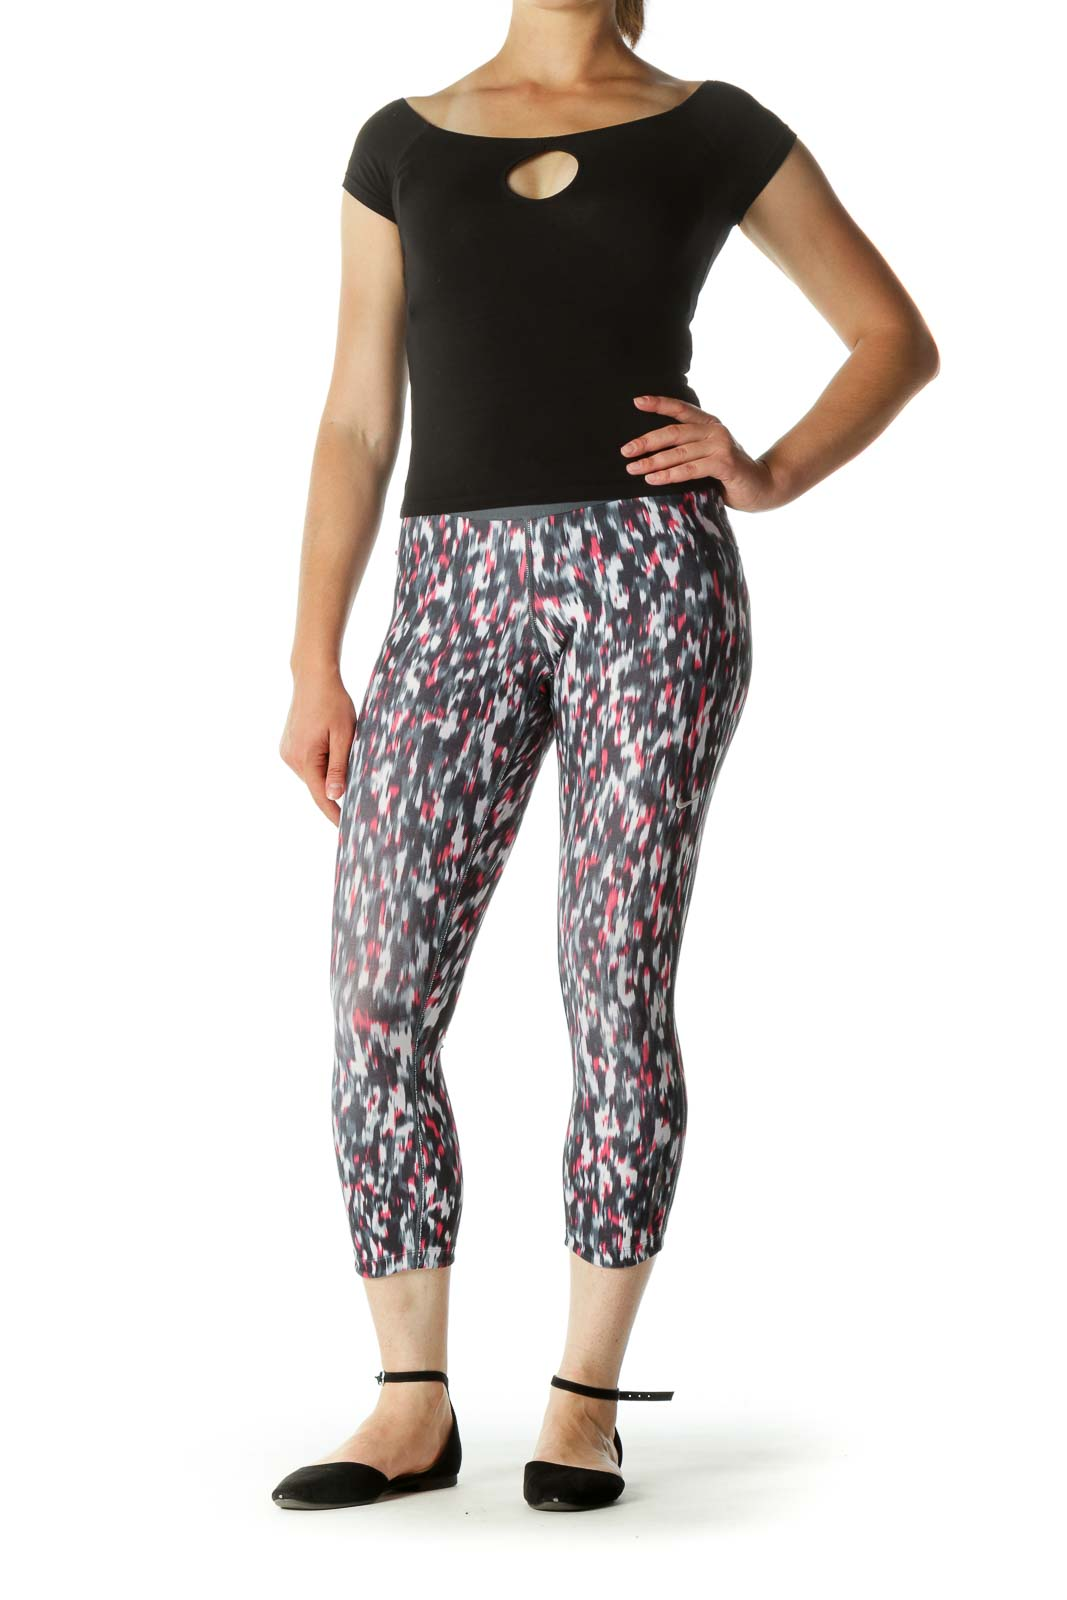 Black Gray Pink Print Inside Drawstring Active Pants